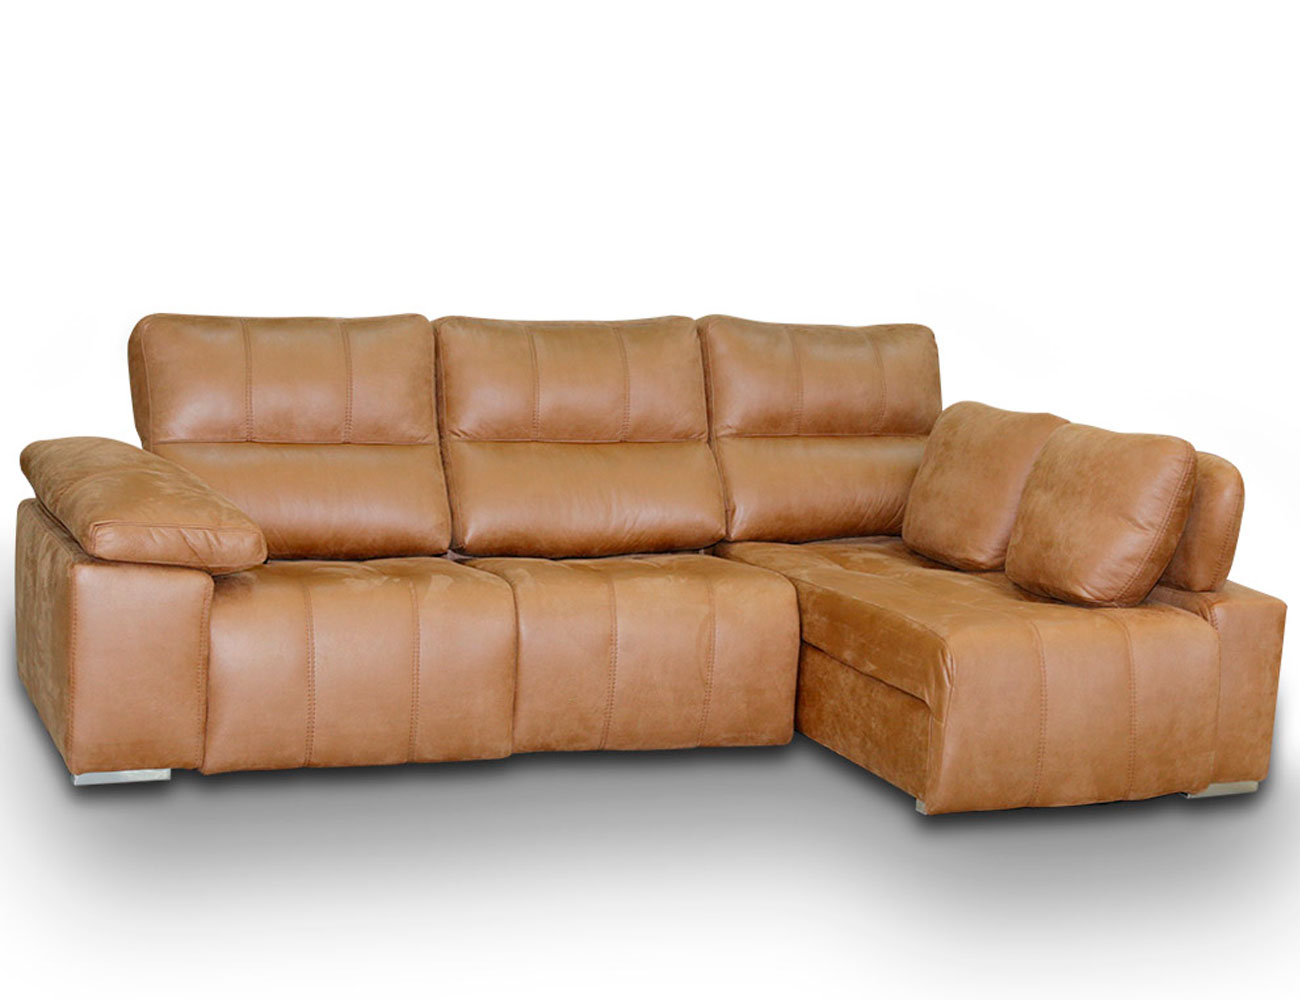 Sofa chaiselongue relax 2 motores anti manchas553